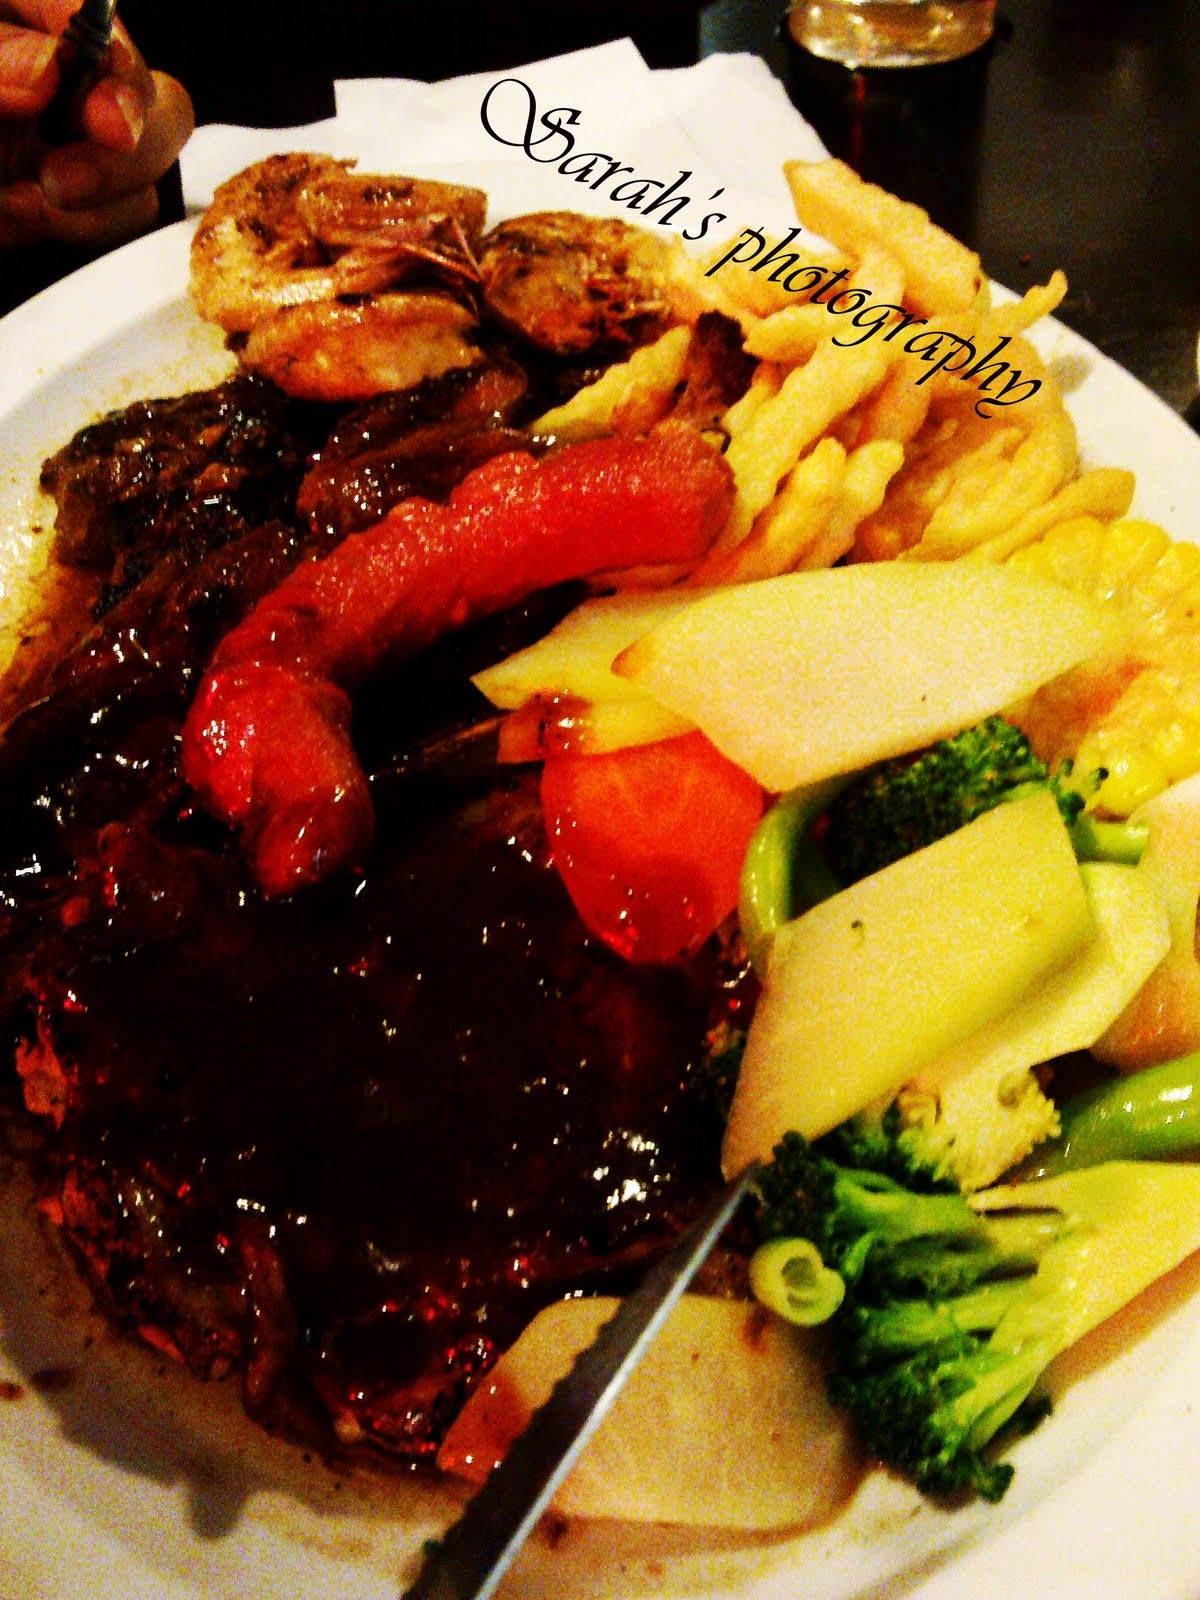 Sizzling Chicken Chop